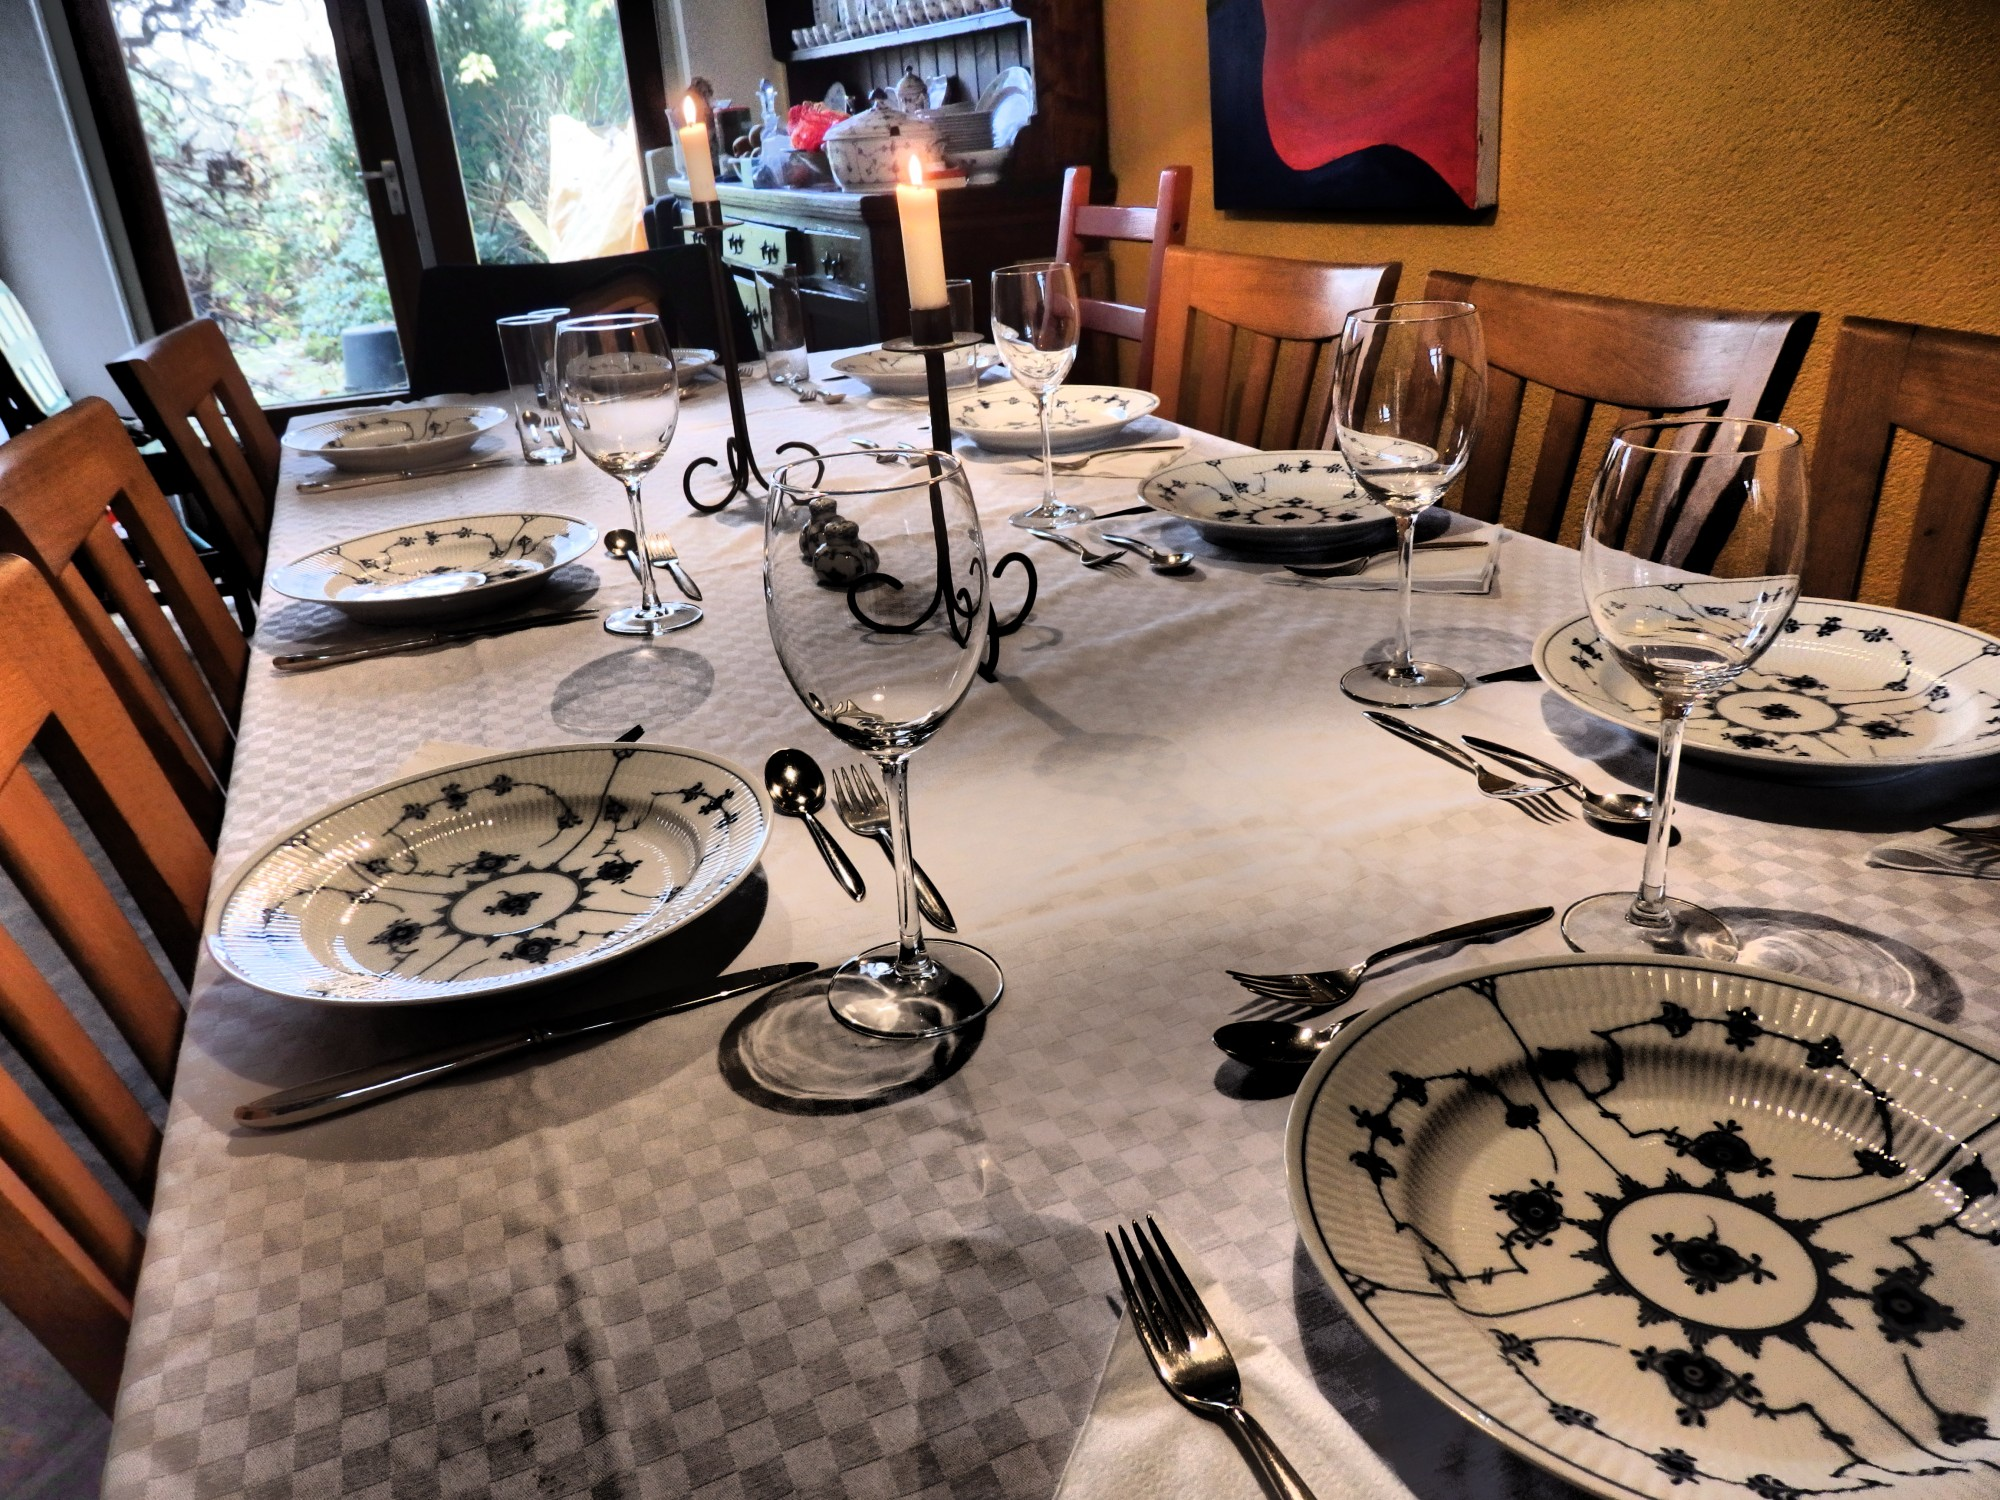 The table is set and ready for Thanksgiving tonight.